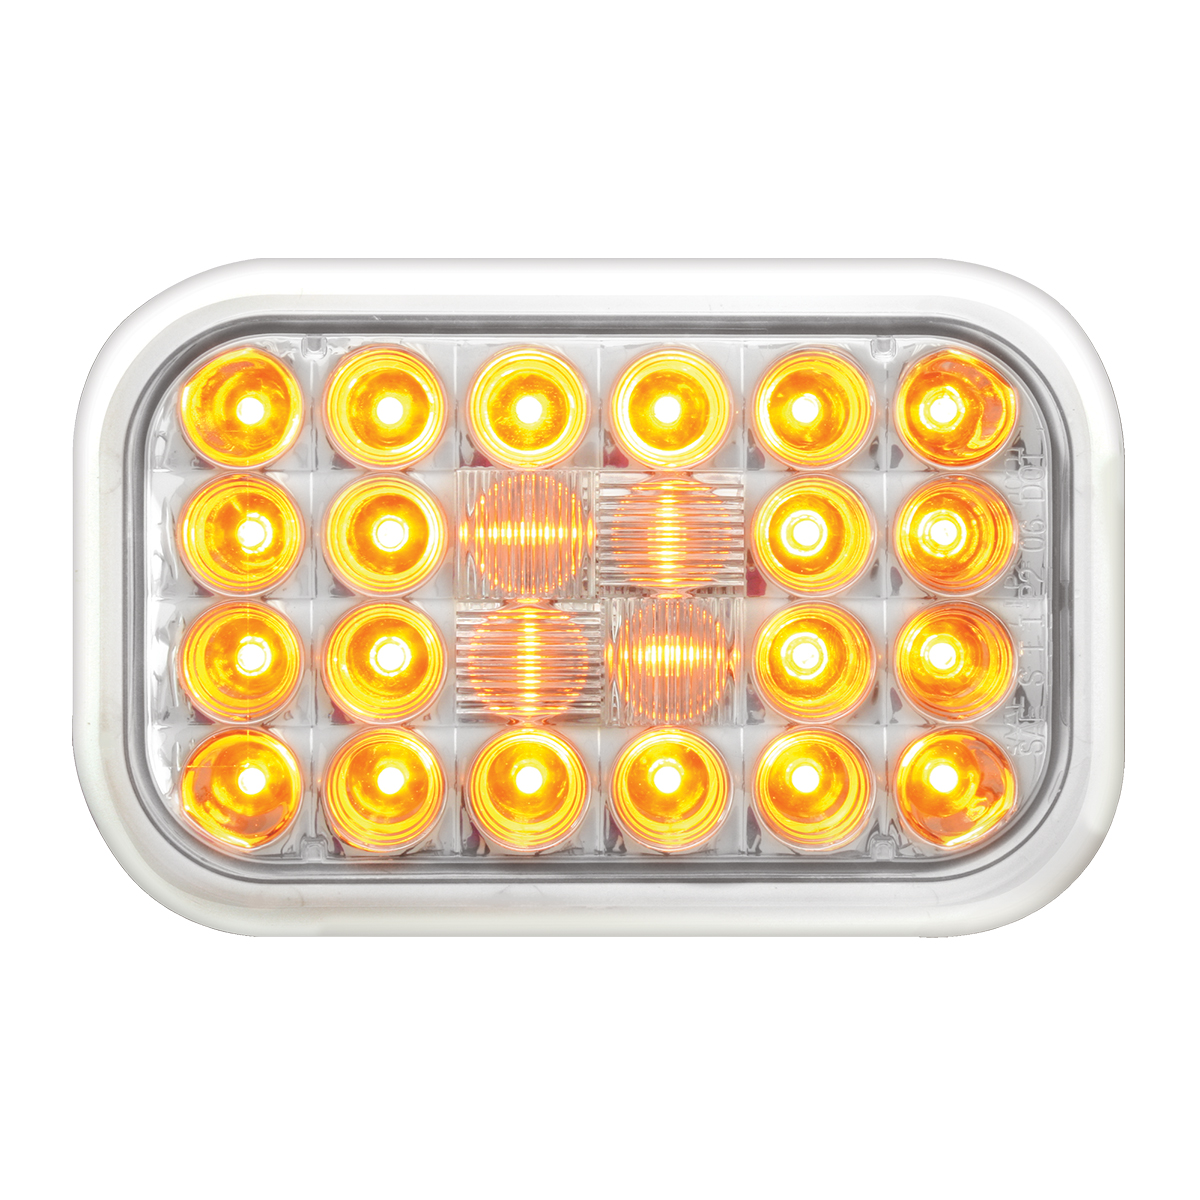 77181 Rectangular Pearl LED Light in Amber/Clear